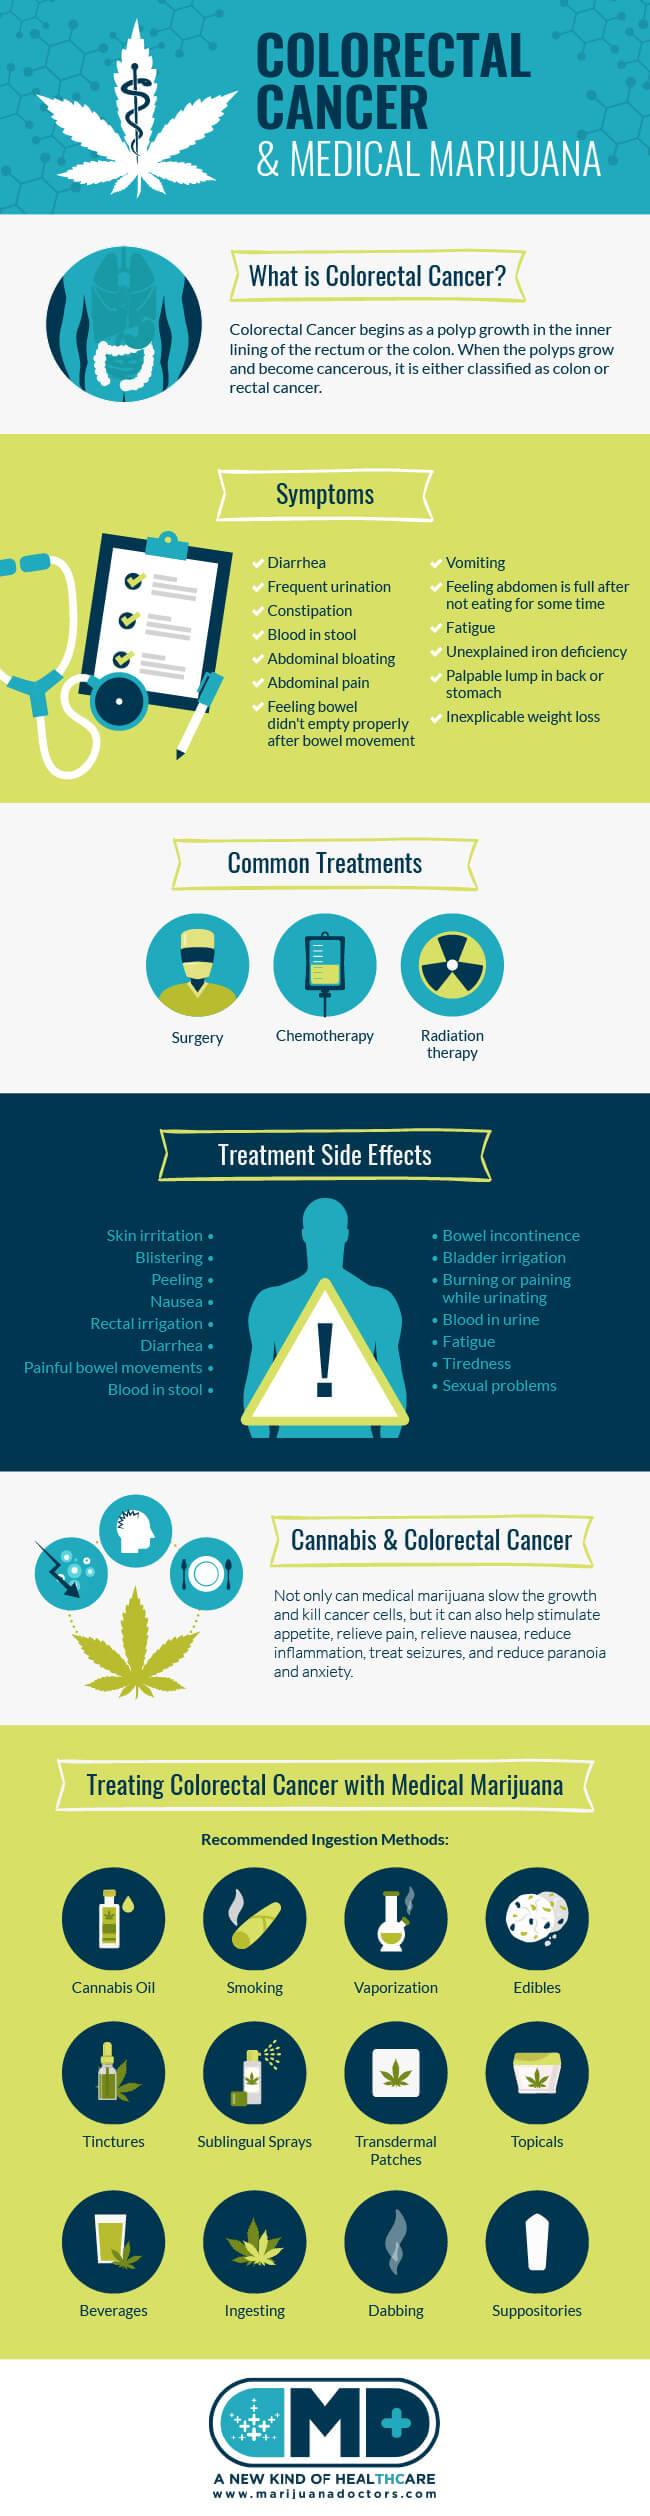 Medical Marijuana and Colorectal Cancer